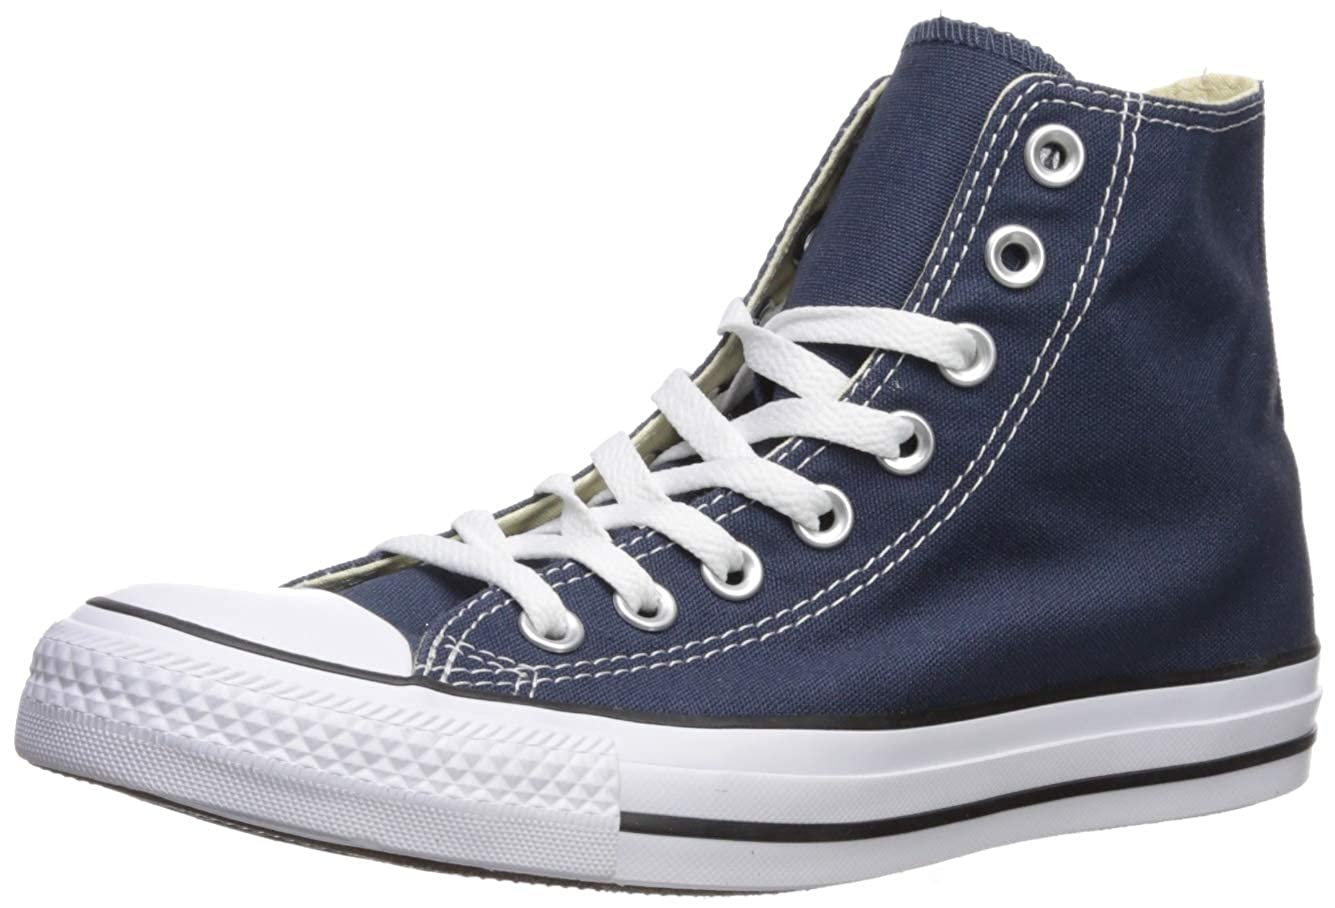 Converse All Star High Trainers Navy | Footshop